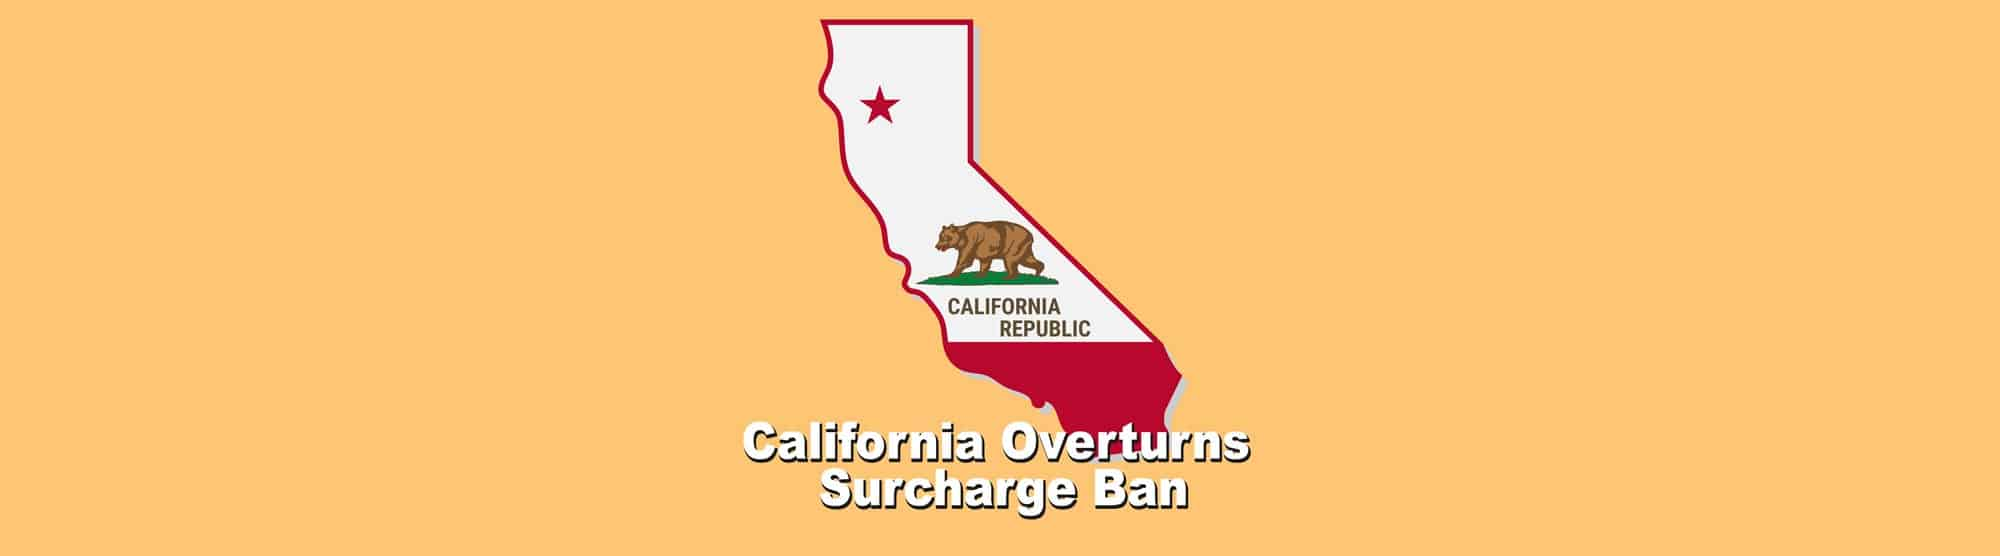 California Overturns Surcharge Ban